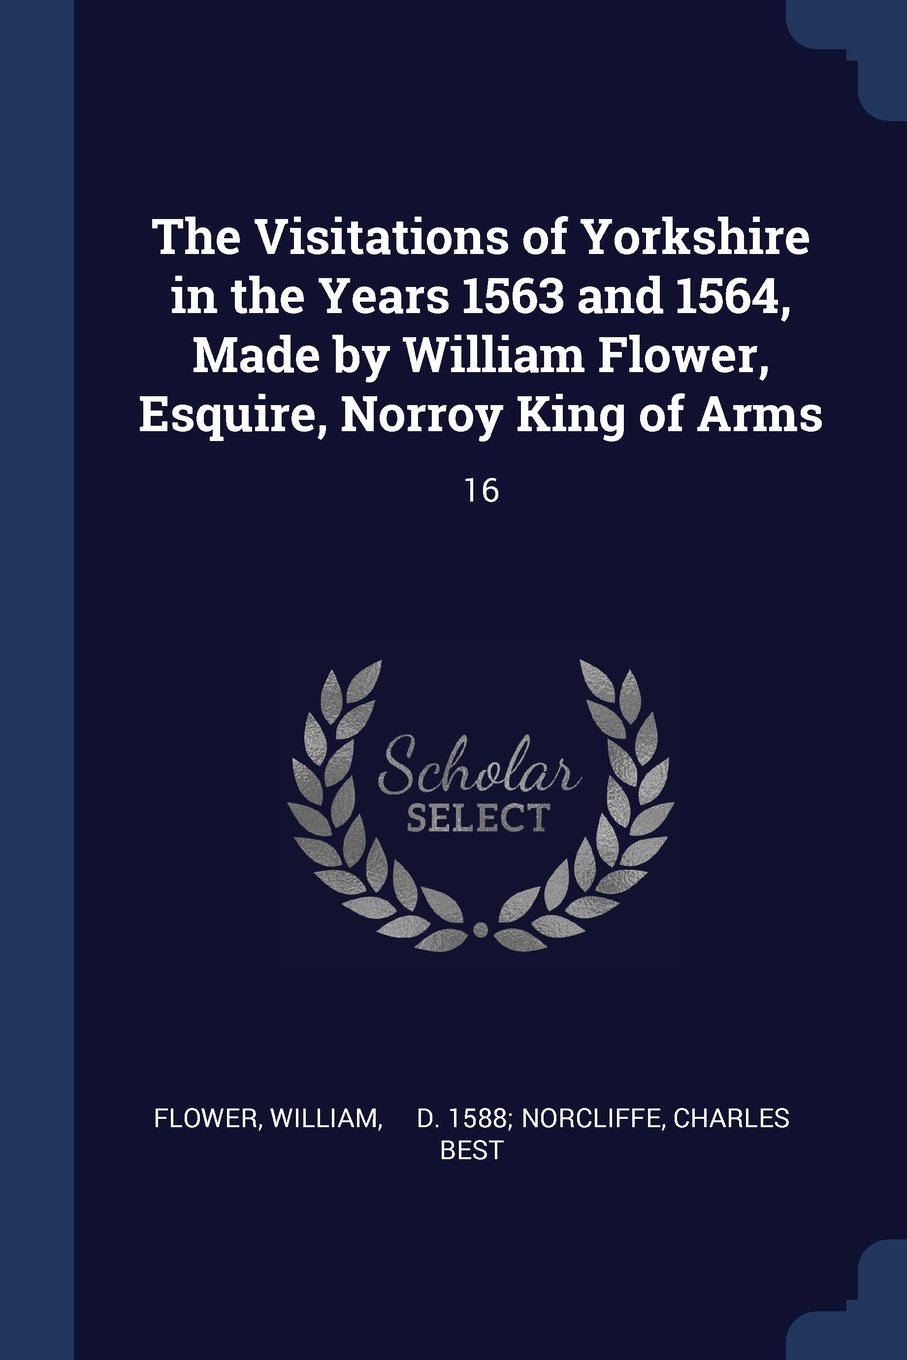 Download The Visitations of Yorkshire in the Years 1563 and 1564, Made by William Flower, Esquire, Norroy King of Arms: 16 ebook